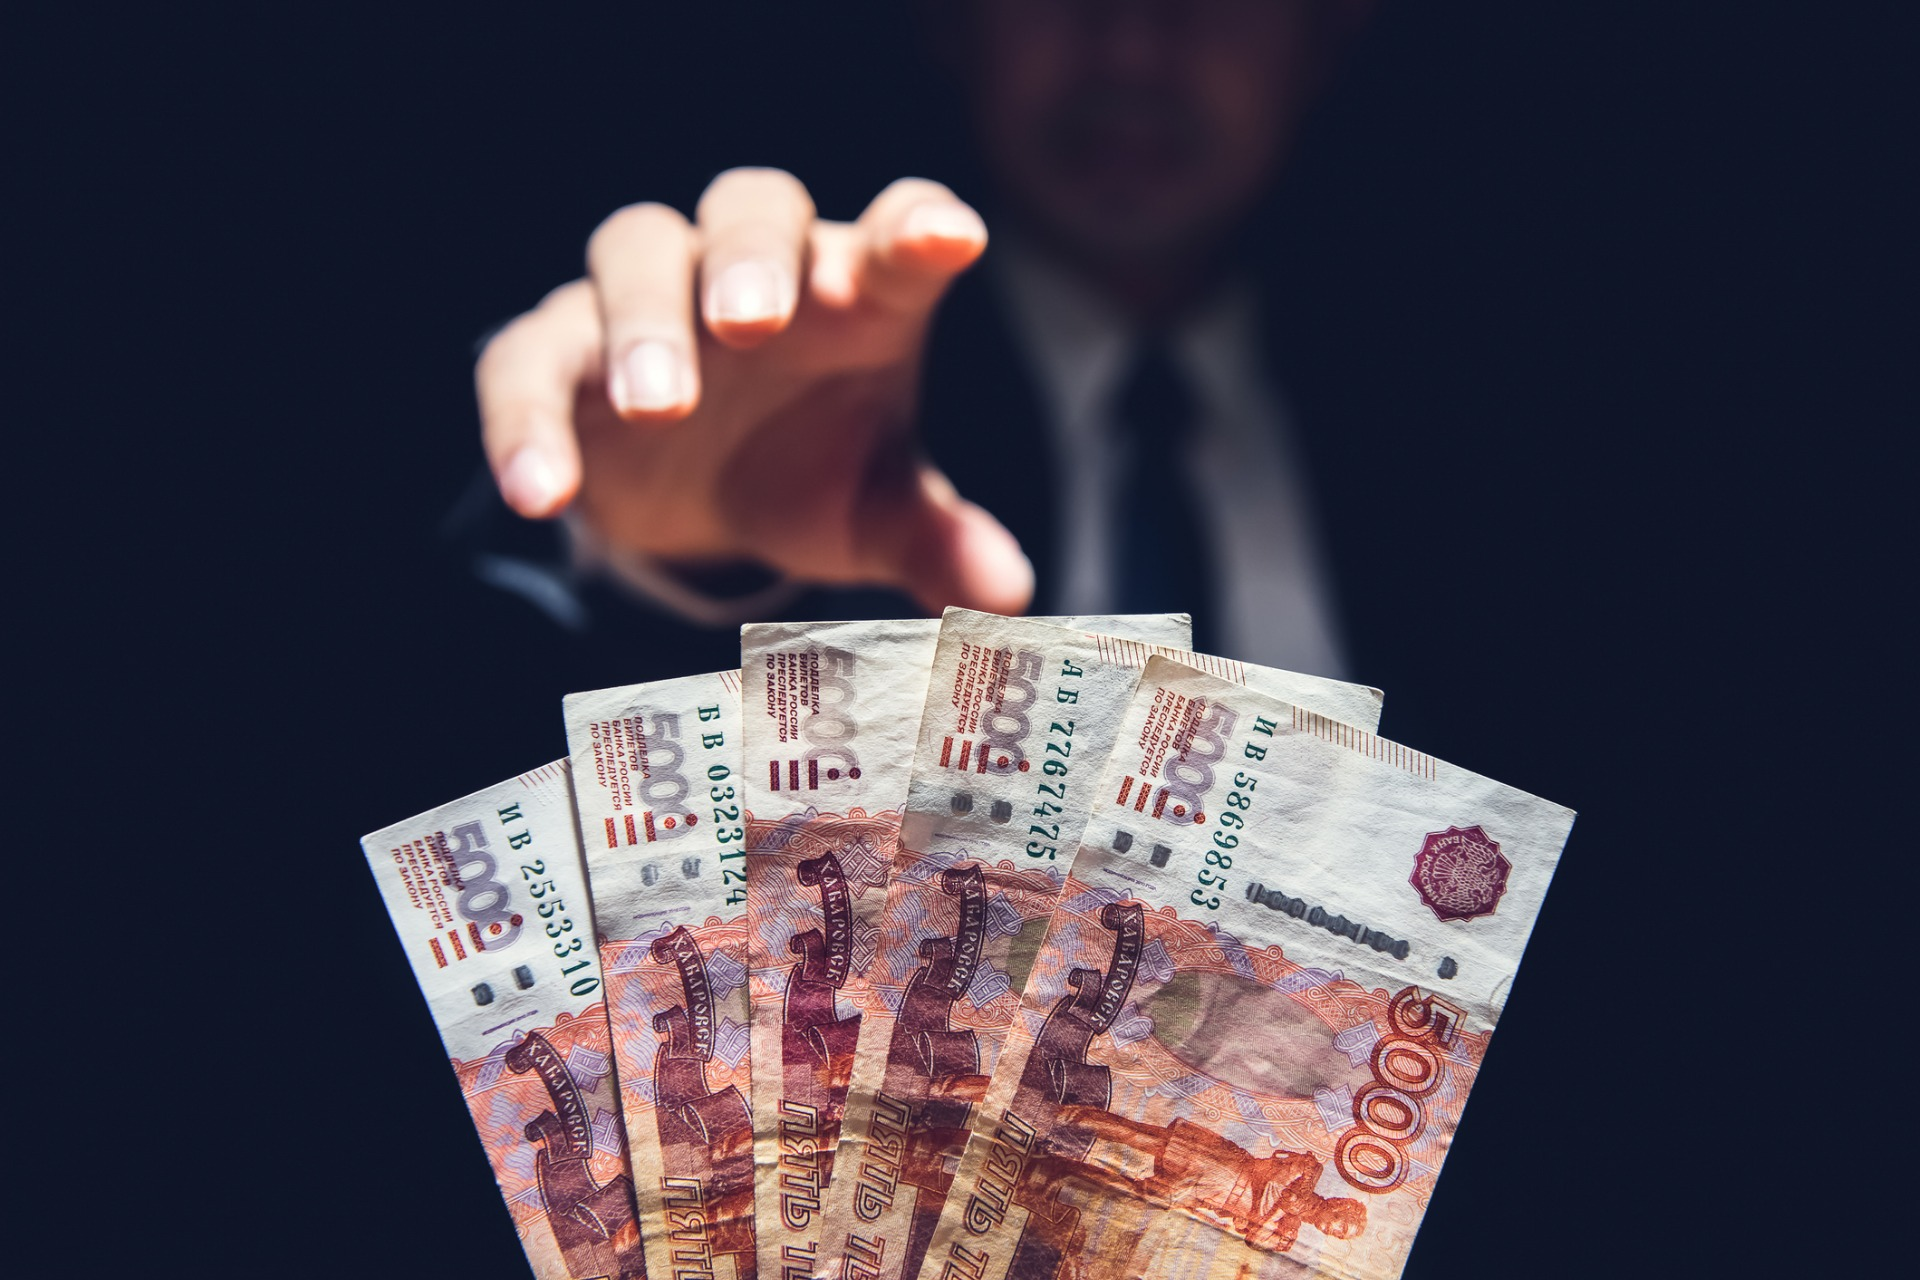 anonymous-businessman-reaching-out-hand-to-grab-money-russian-ruble-picture-id987130422